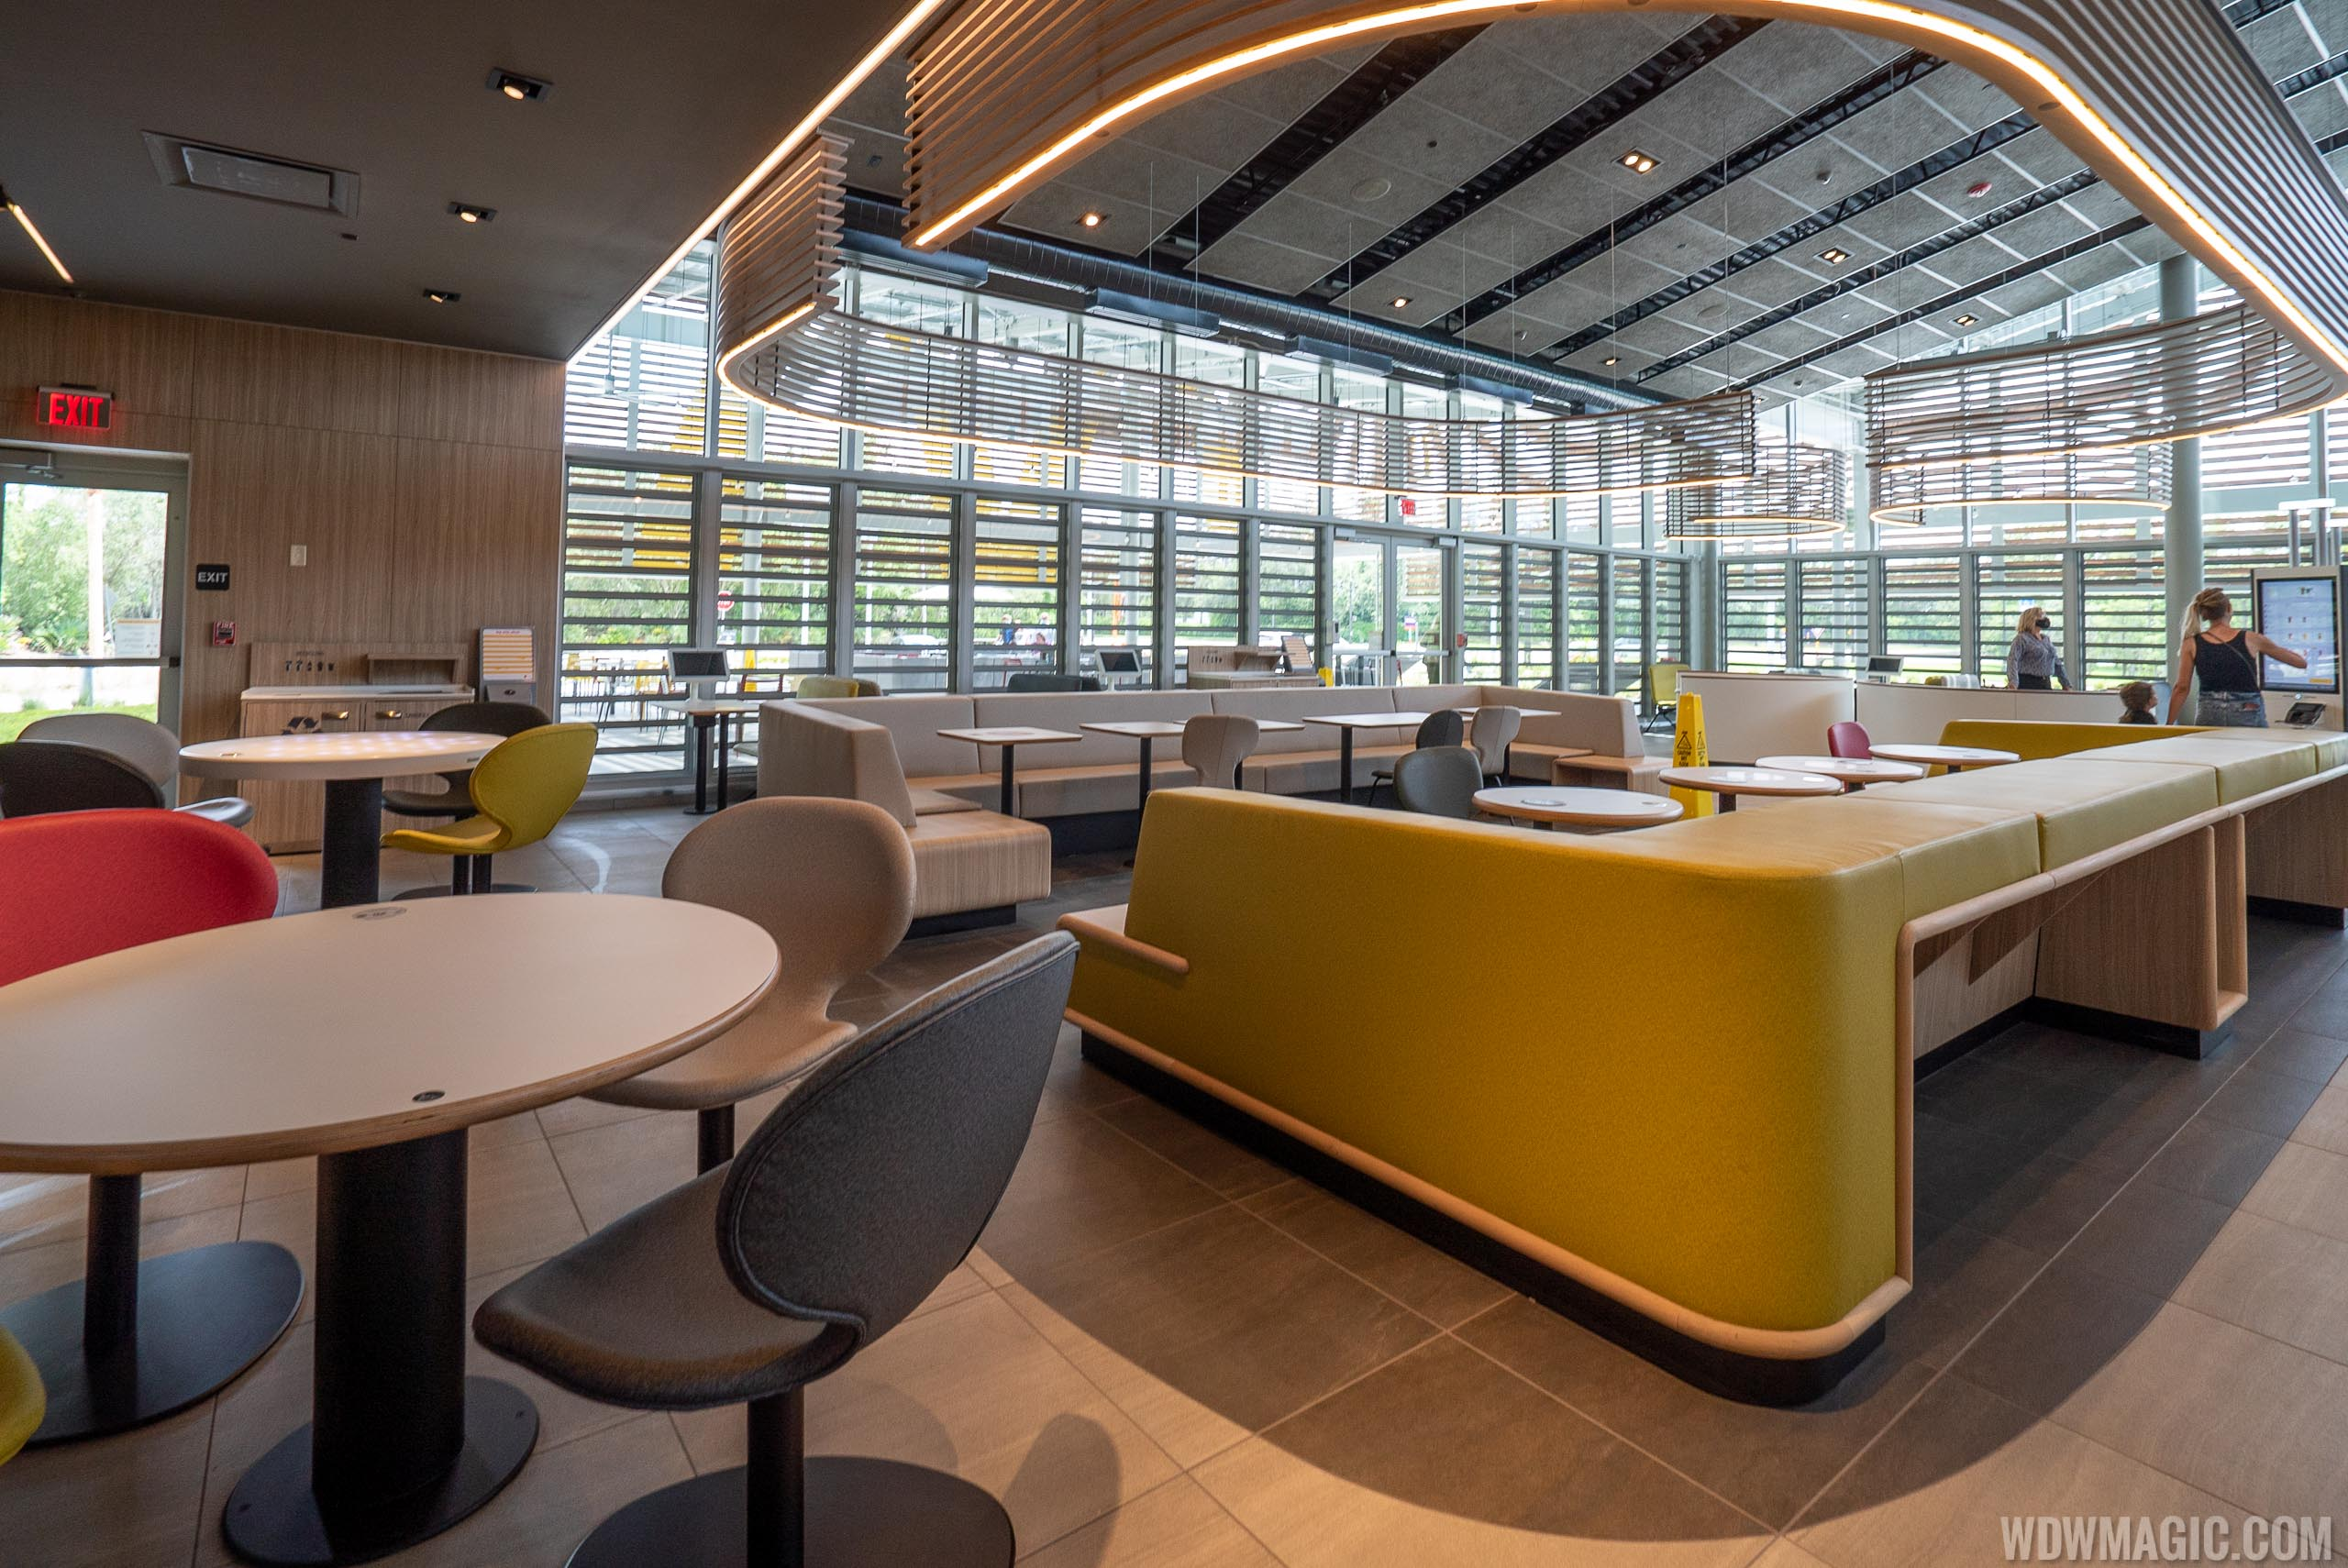 The inside is very modern with a variety of different seating types